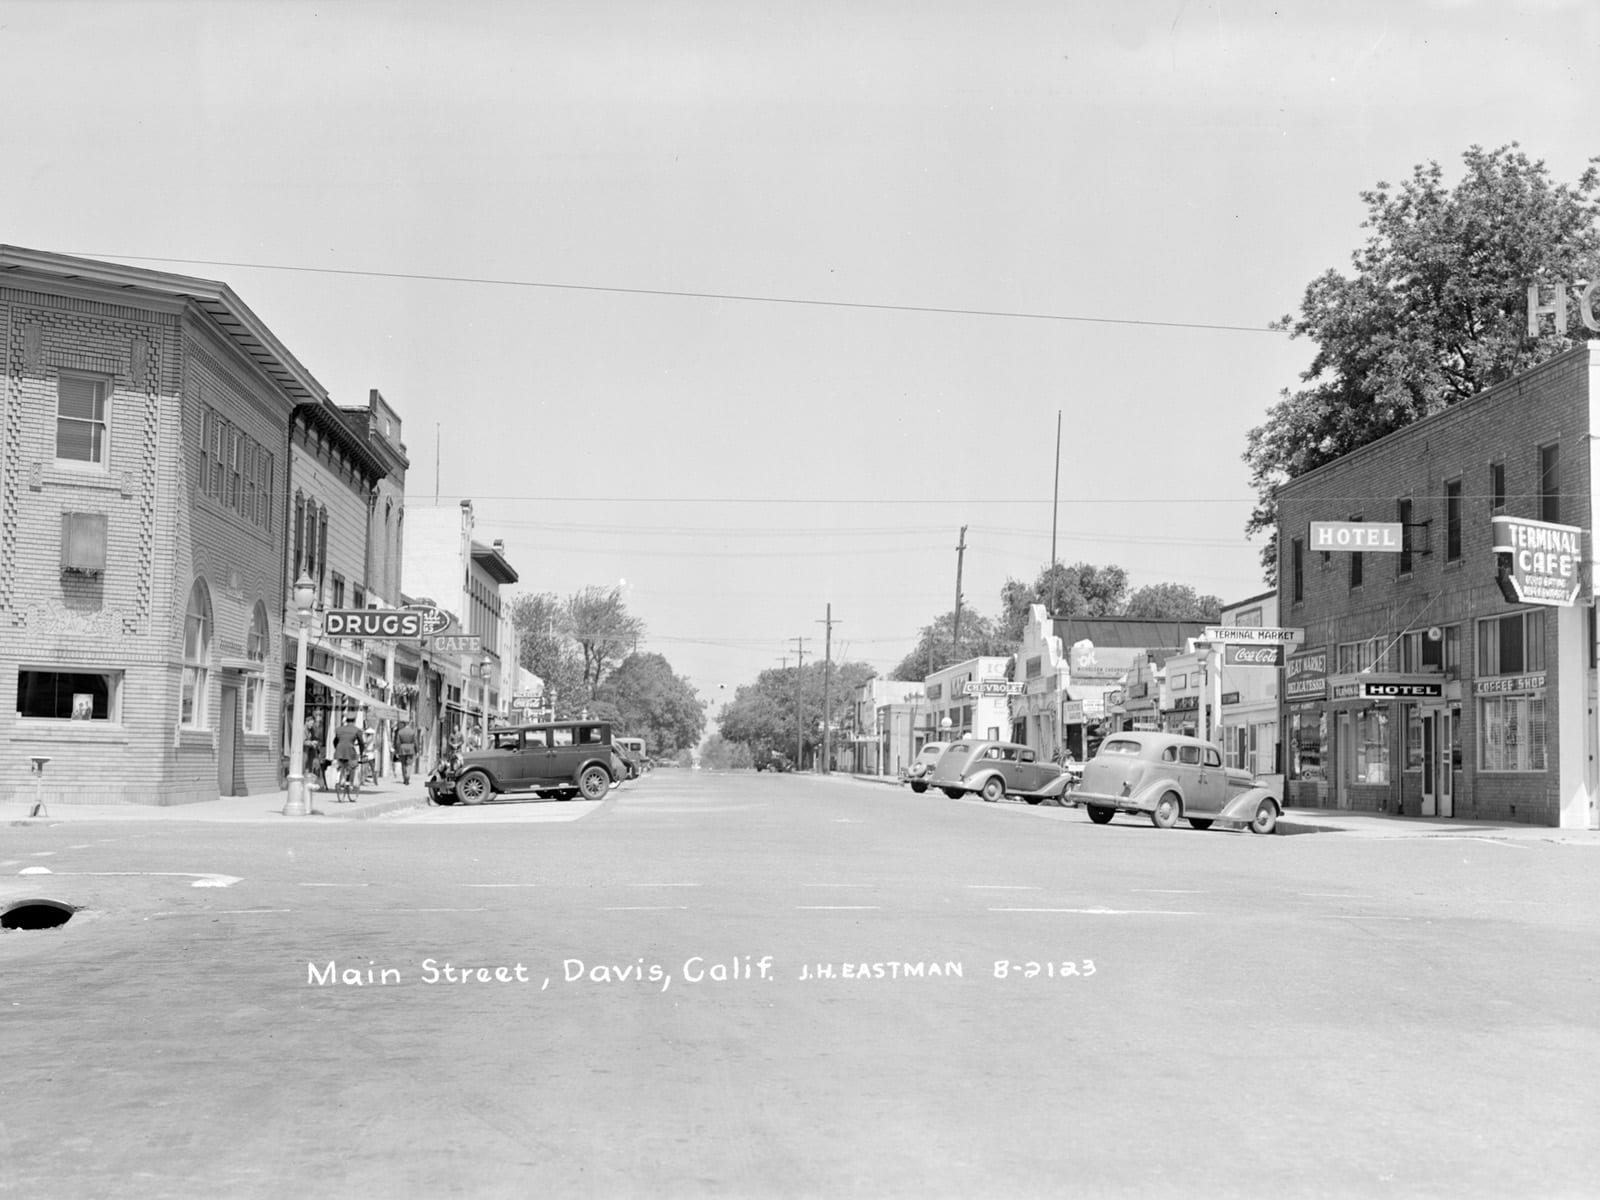 G street at Second Street, looking north, 1944